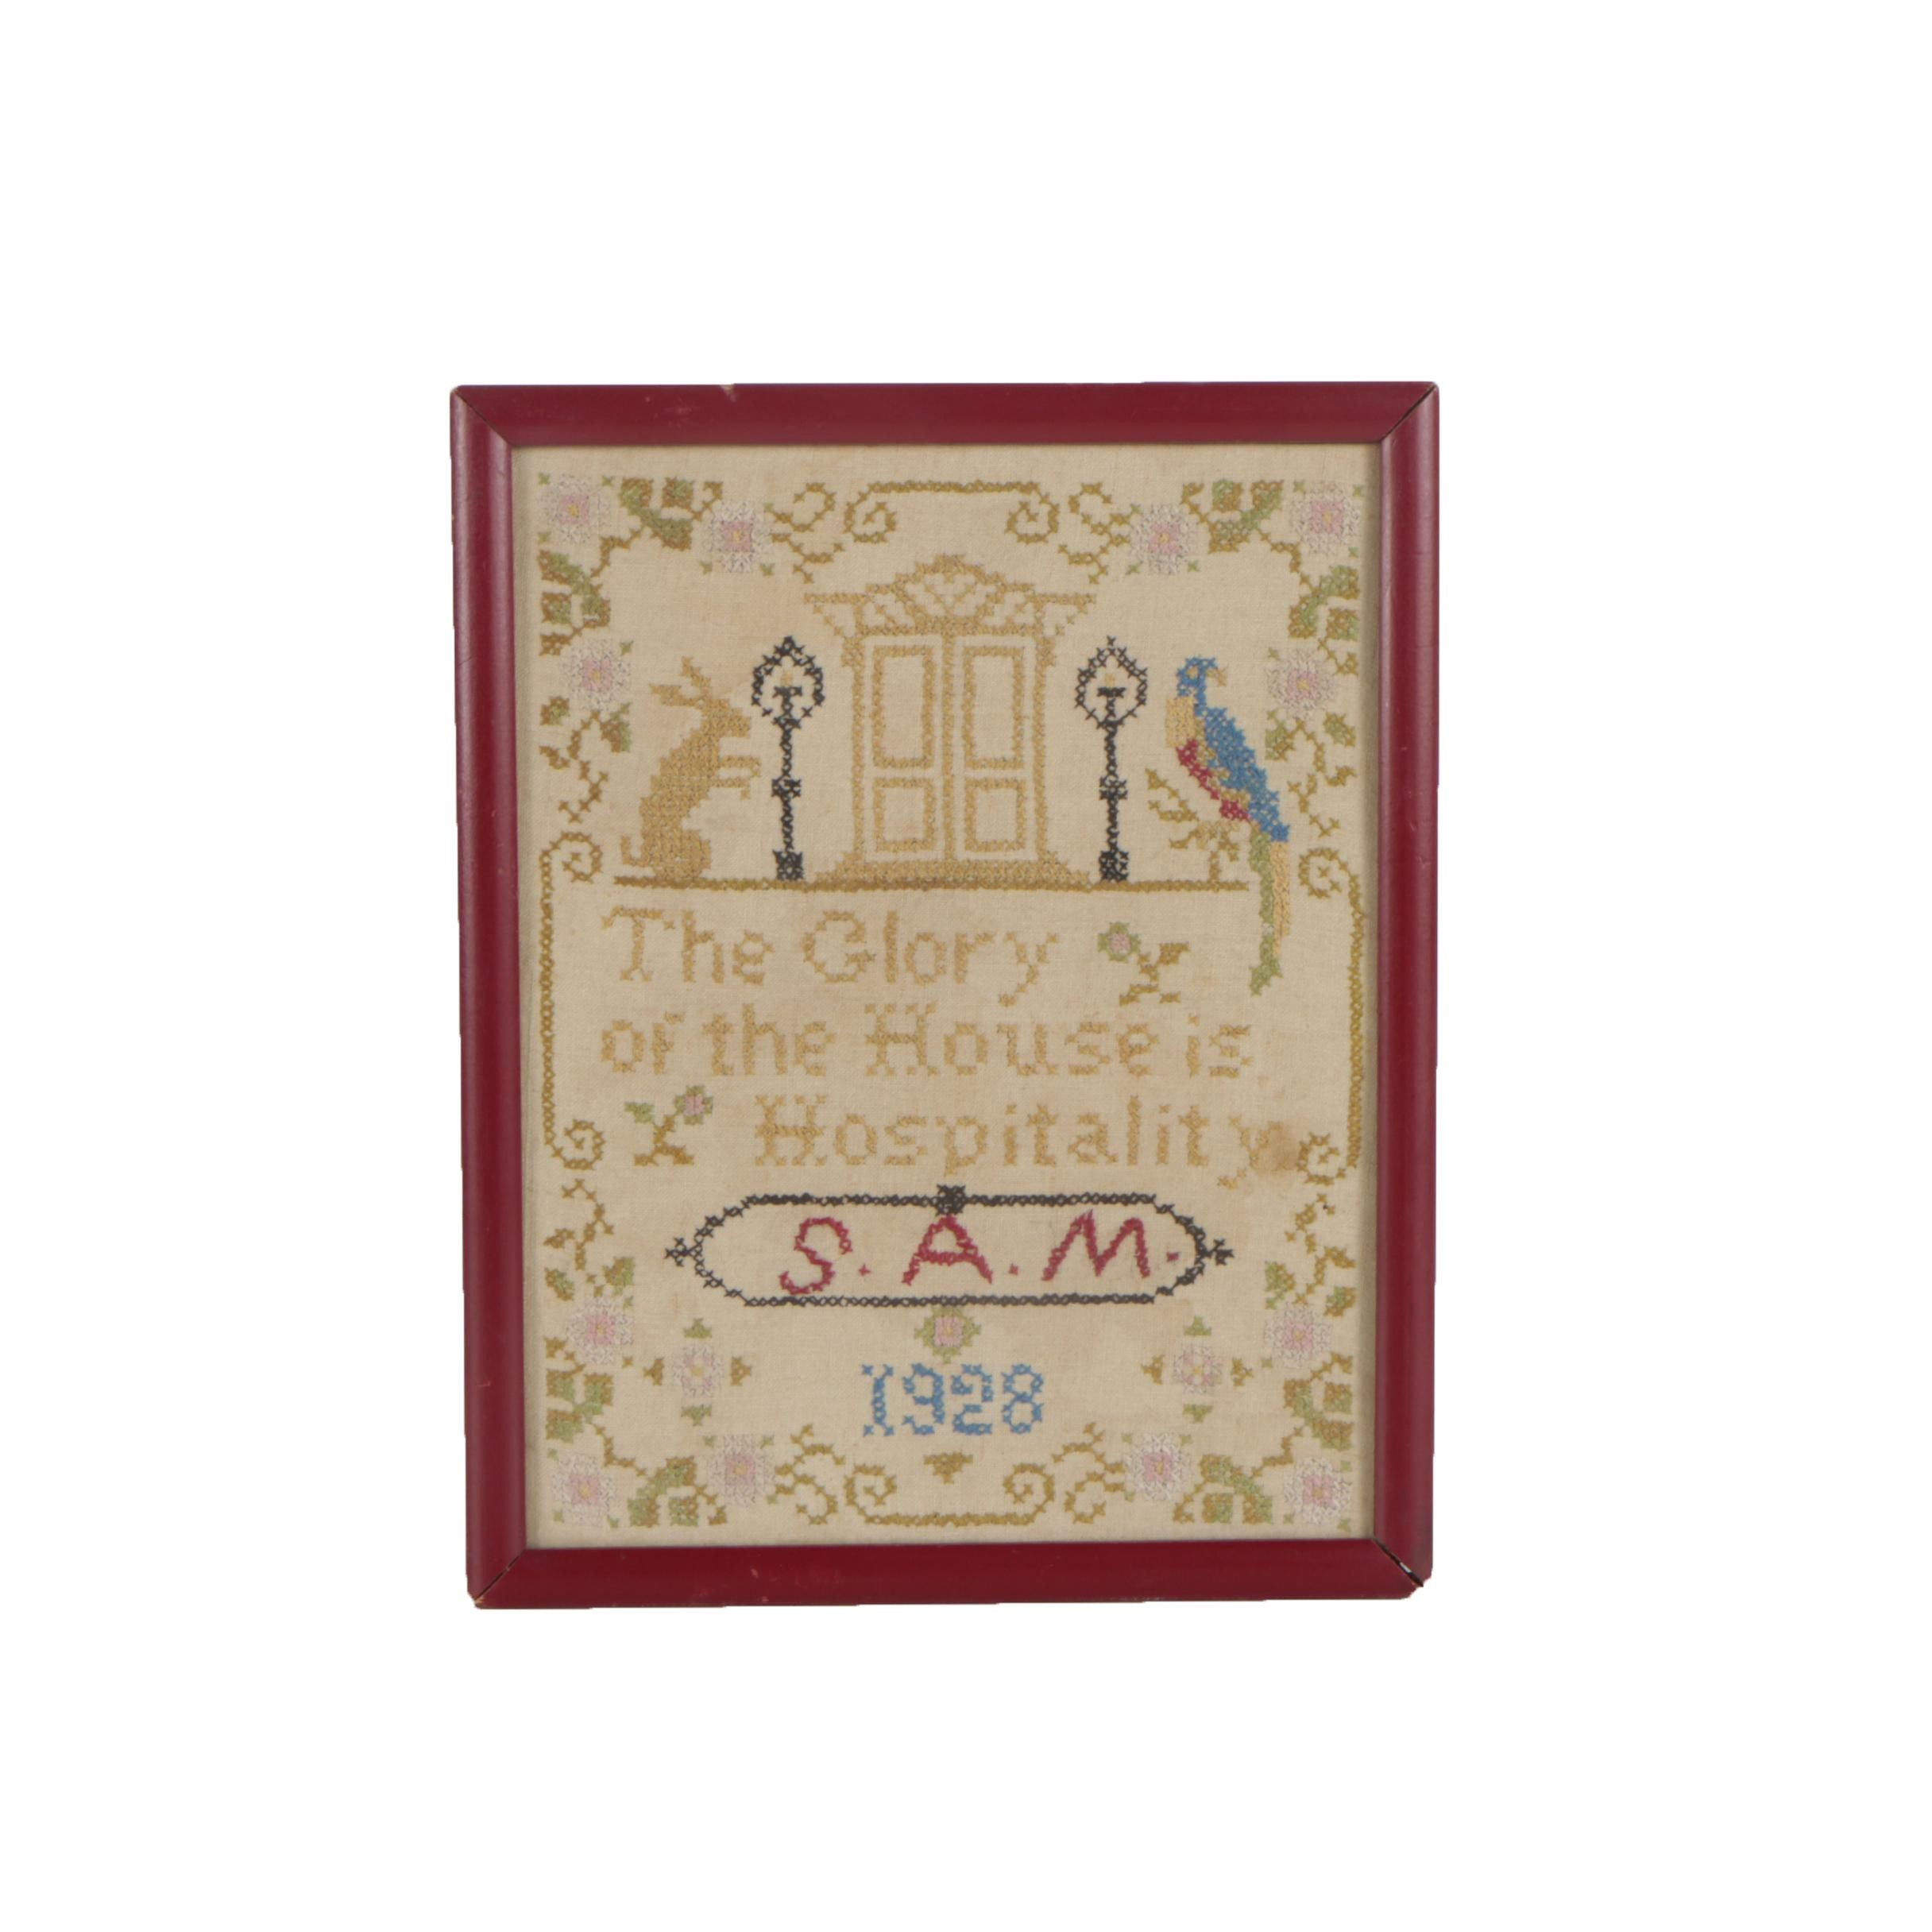 "1928 Cotton Cross Stitch ""The Glory of the House is Hospitality"""